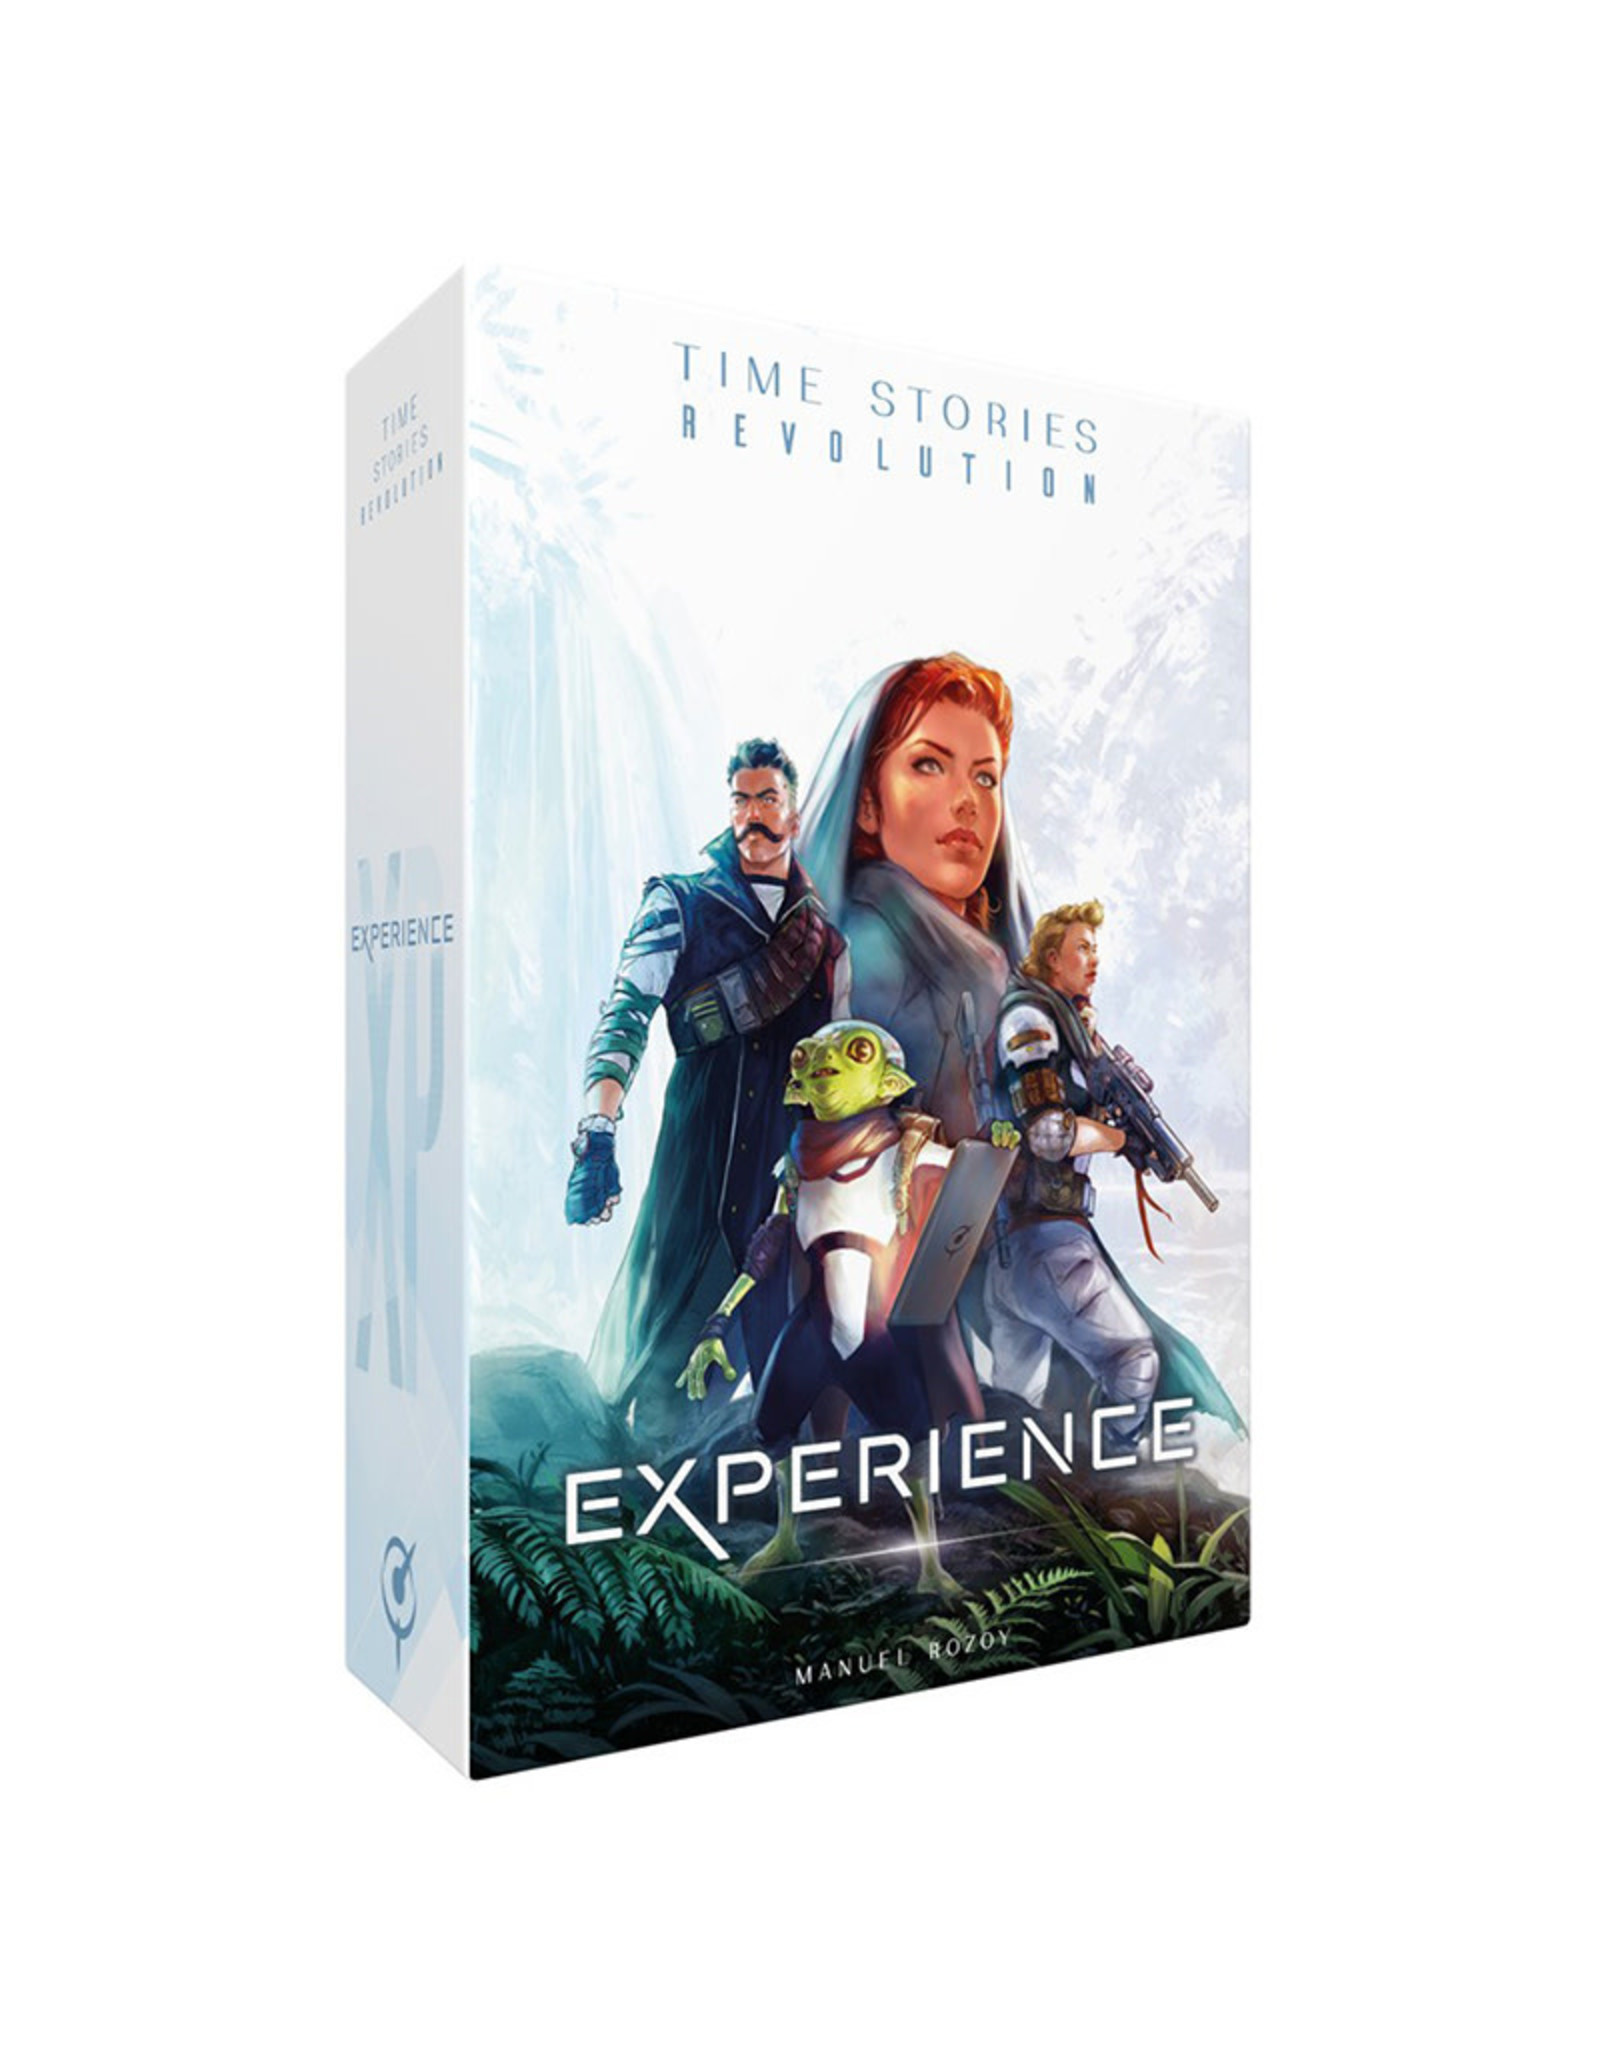 Time Stories Revolution Experience